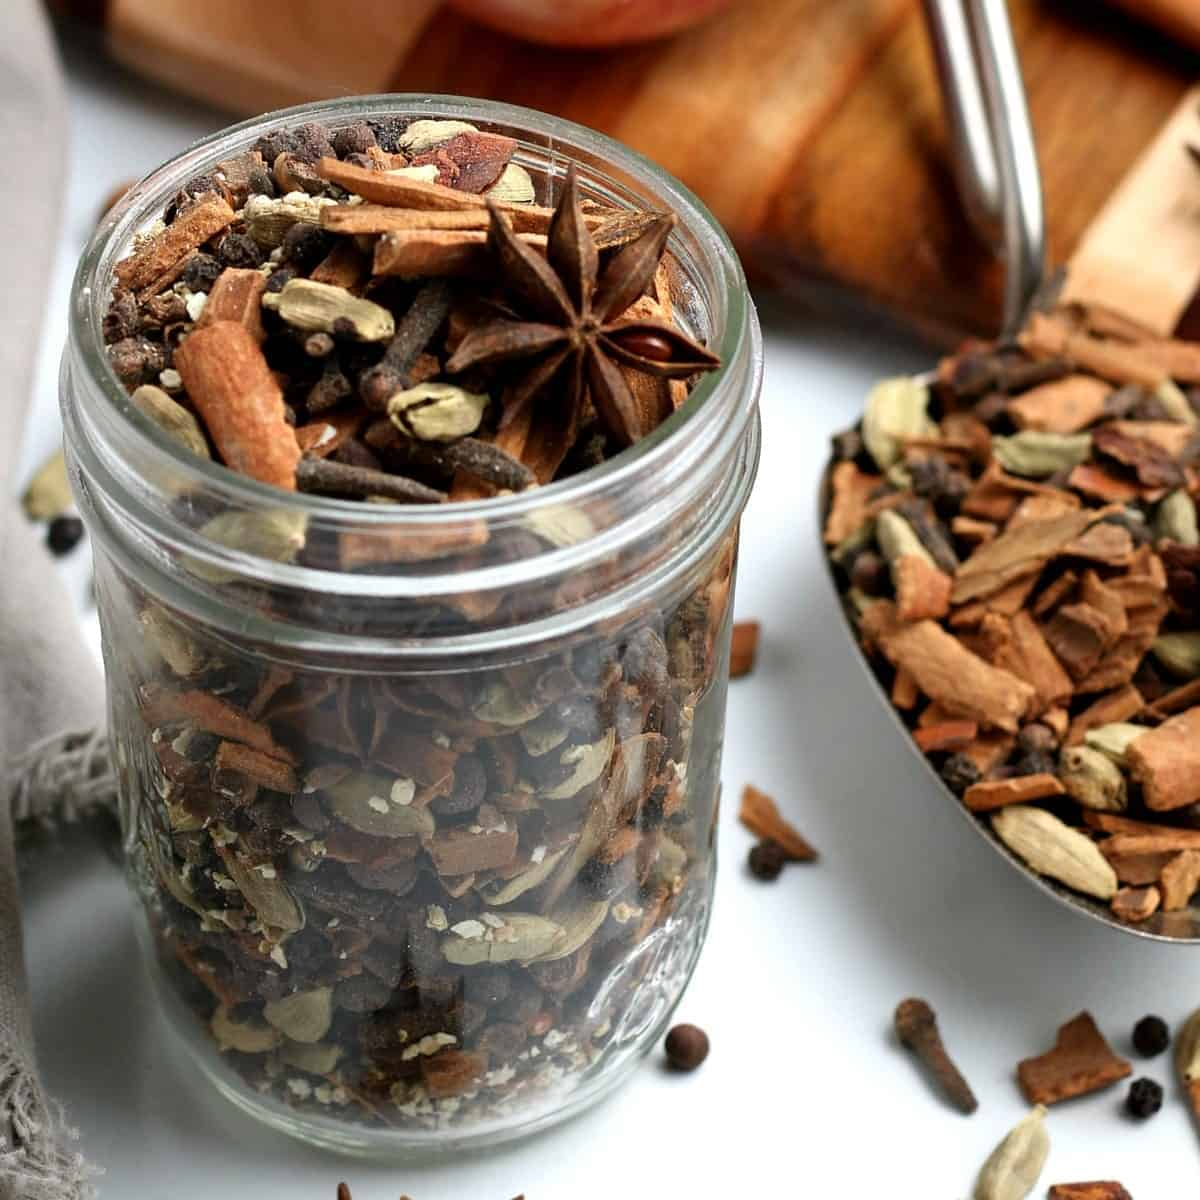 Canning jar filled with earthy flavors and a spice filled scoop.